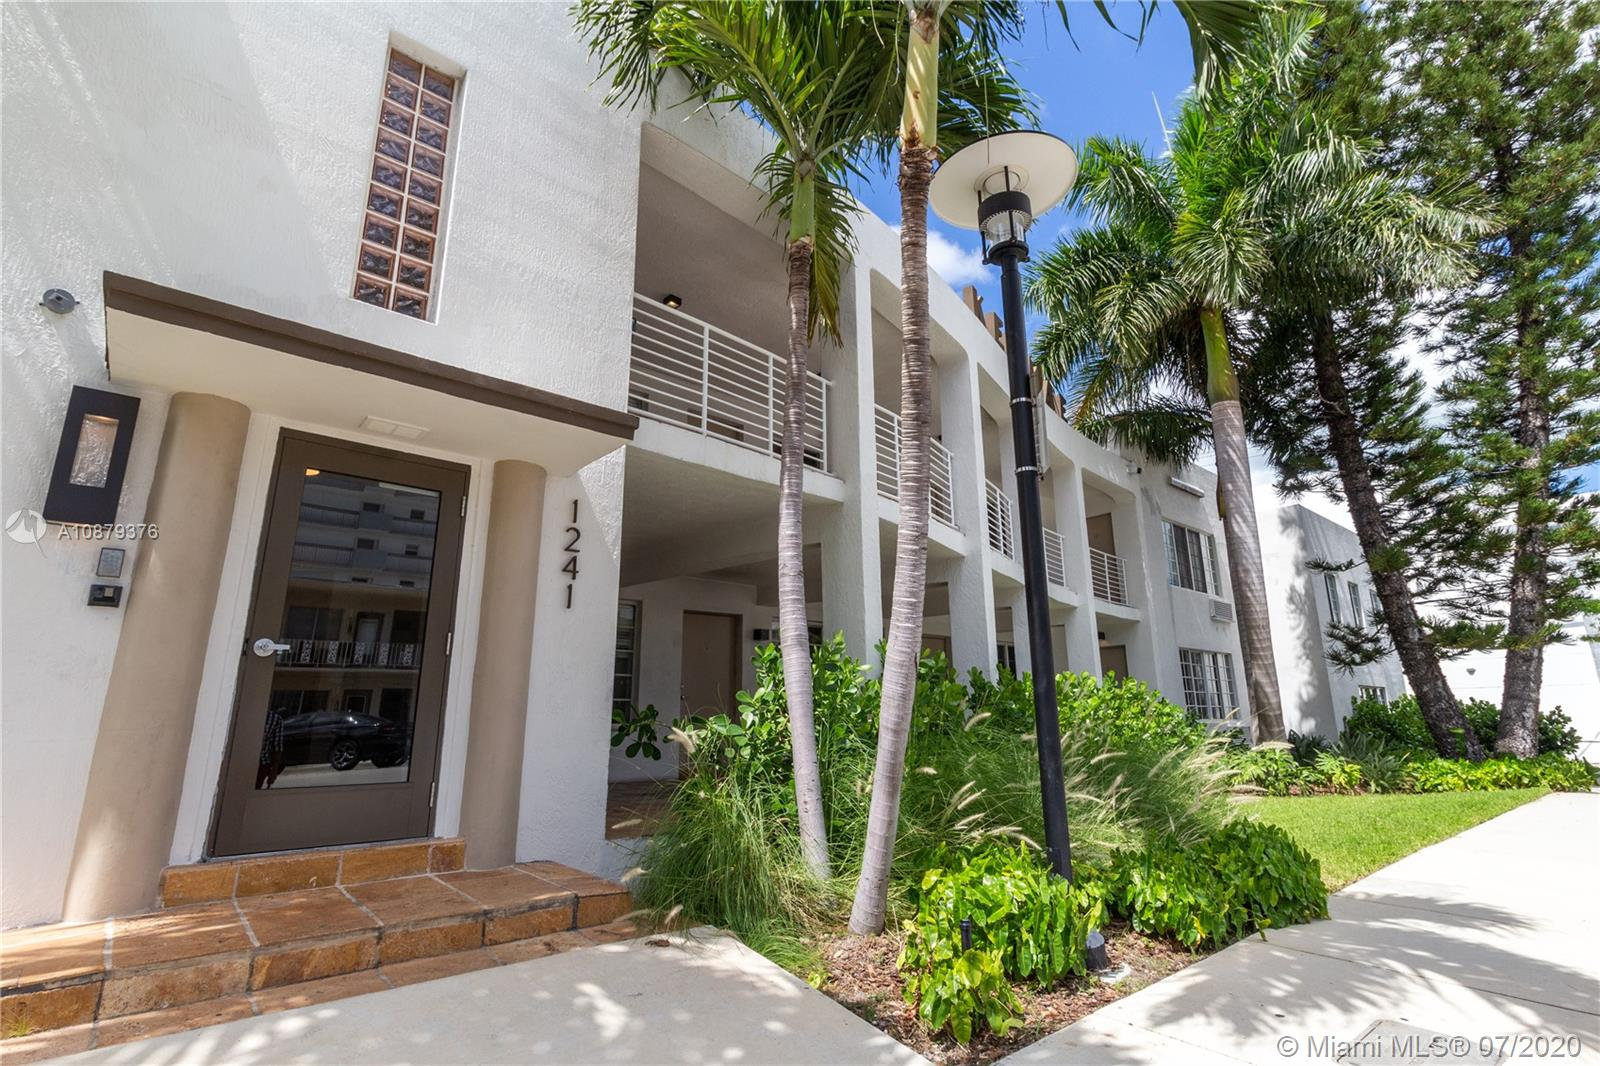 1241  14th St #5 For Sale A10879376, FL